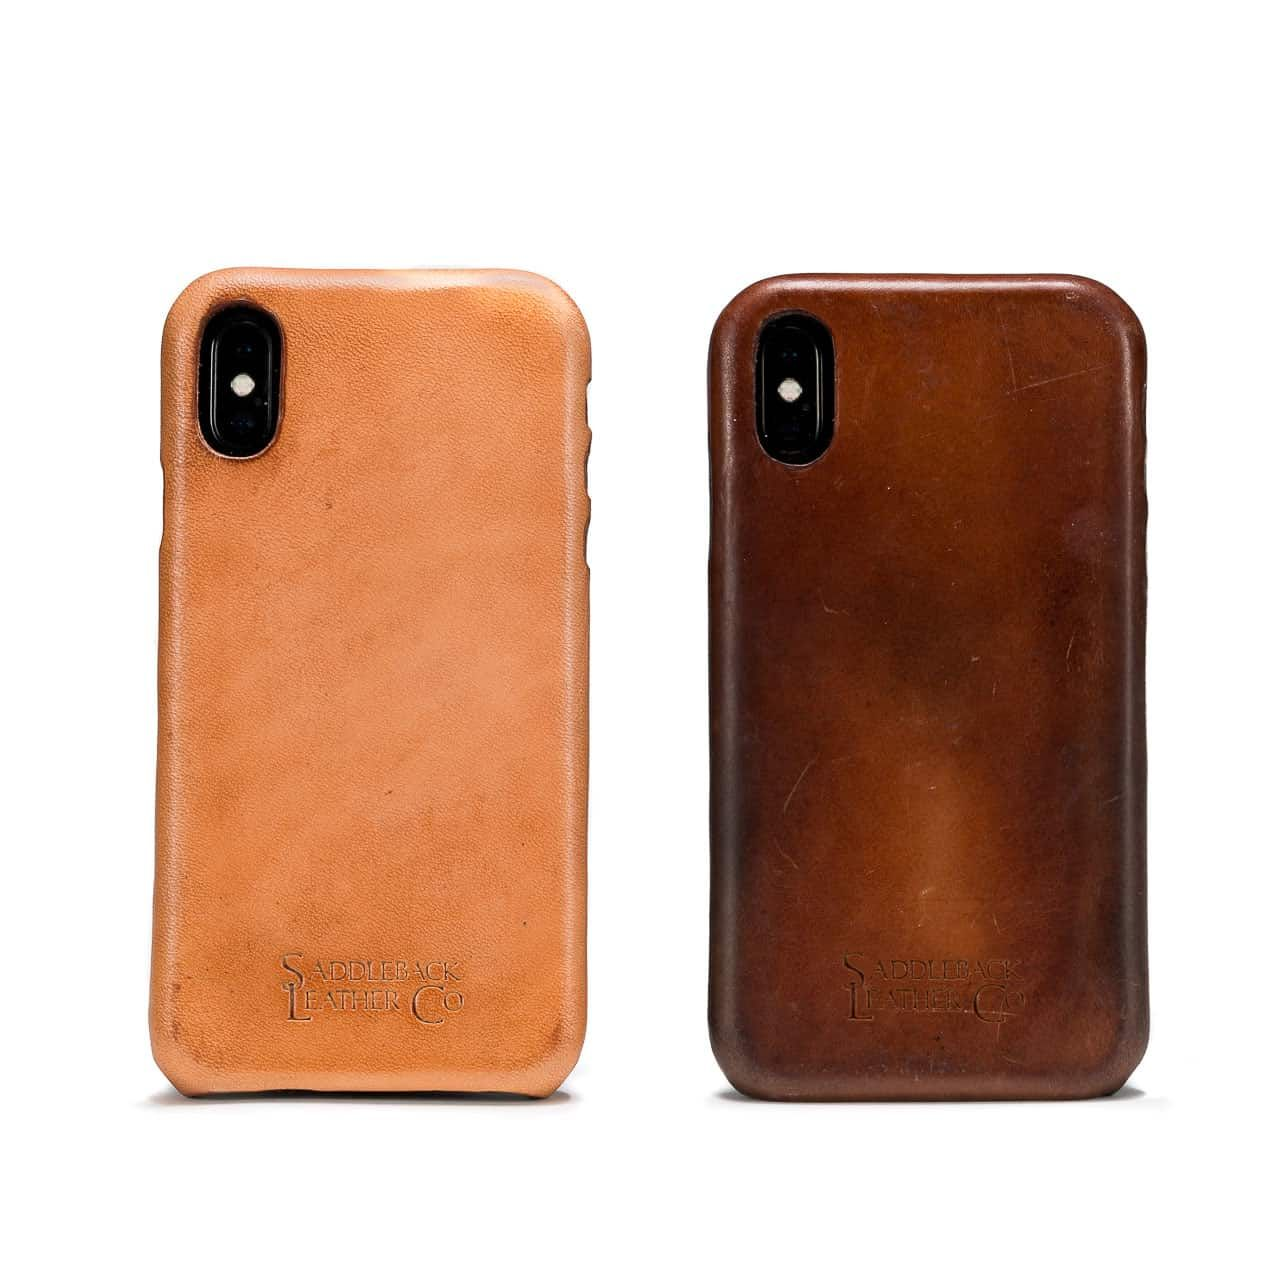 New and Patina'd Boot Leather iPhone Case from the Back Side by Side